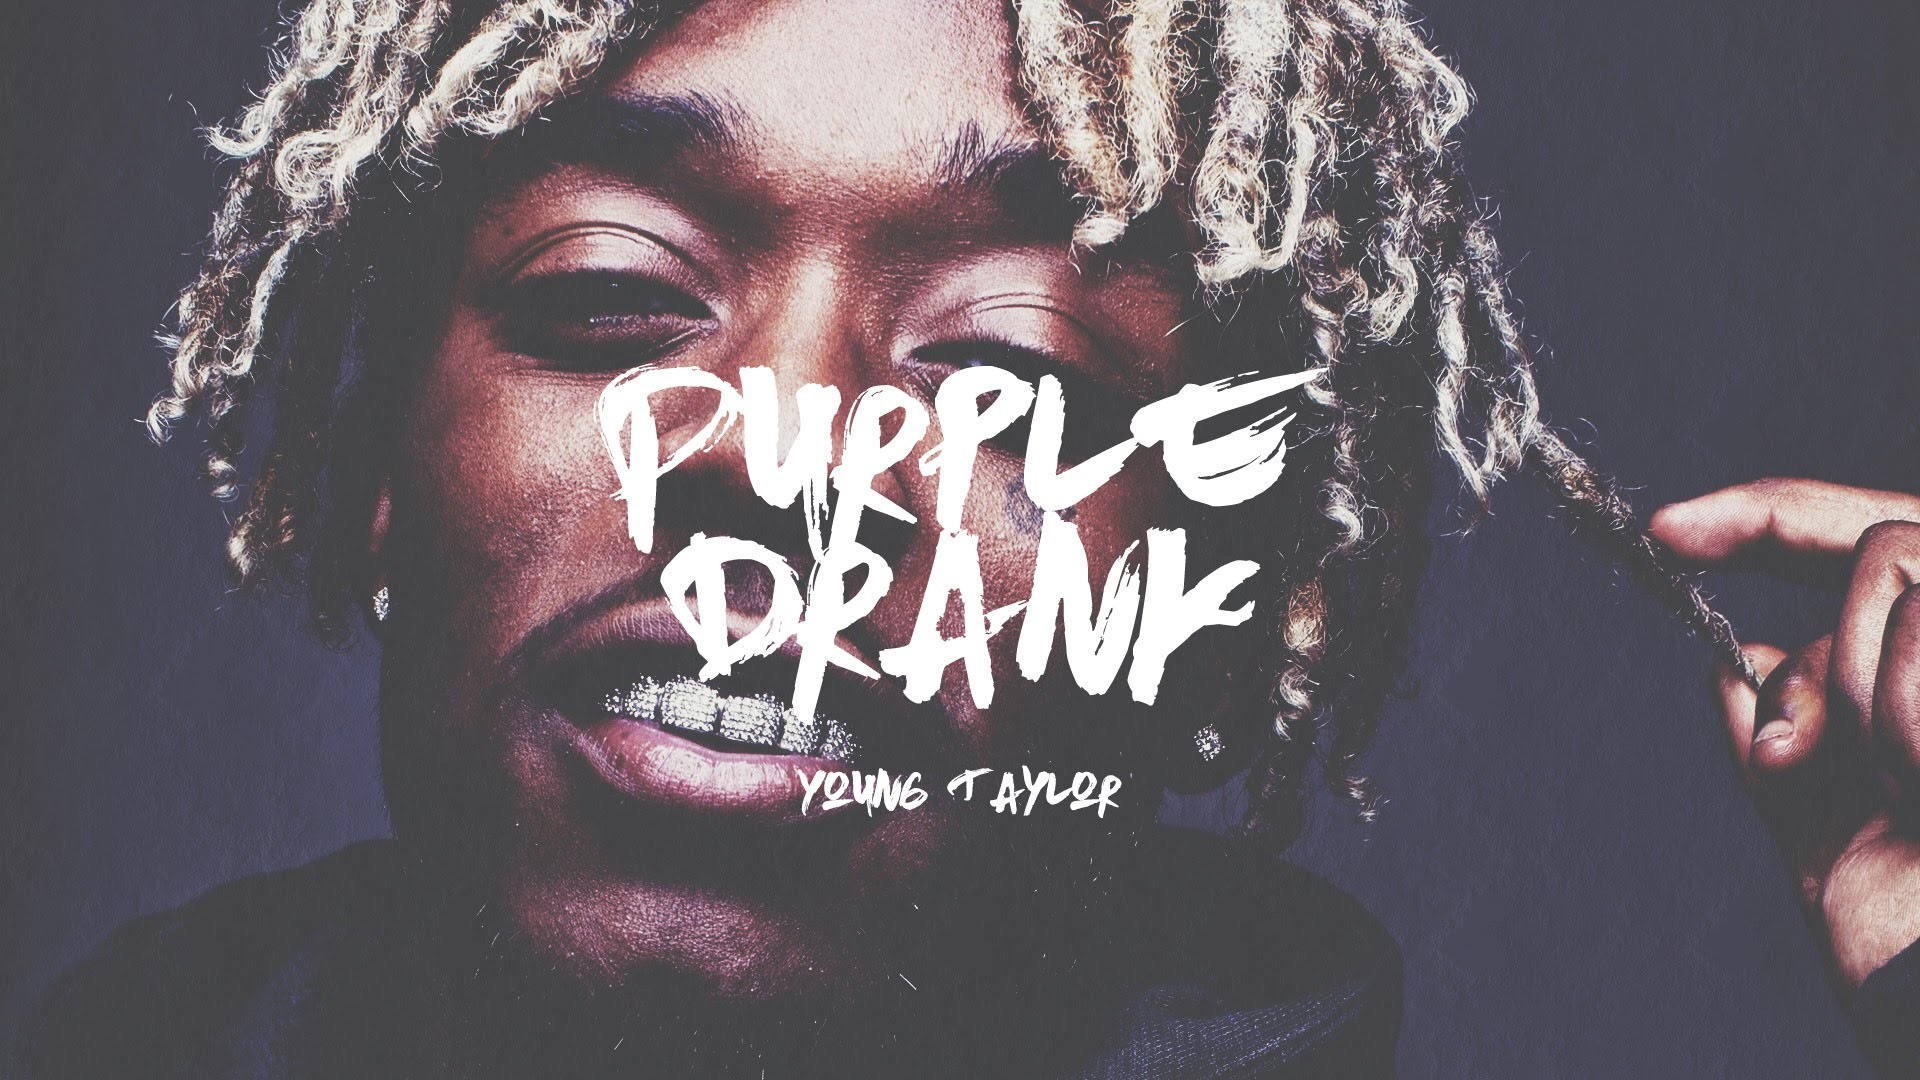 Lil Uzi Vert Wallpapers 76 Background Pictures Select from premium lil uzi vert of the highest quality. lil uzi vert wallpapers 76 background pictures